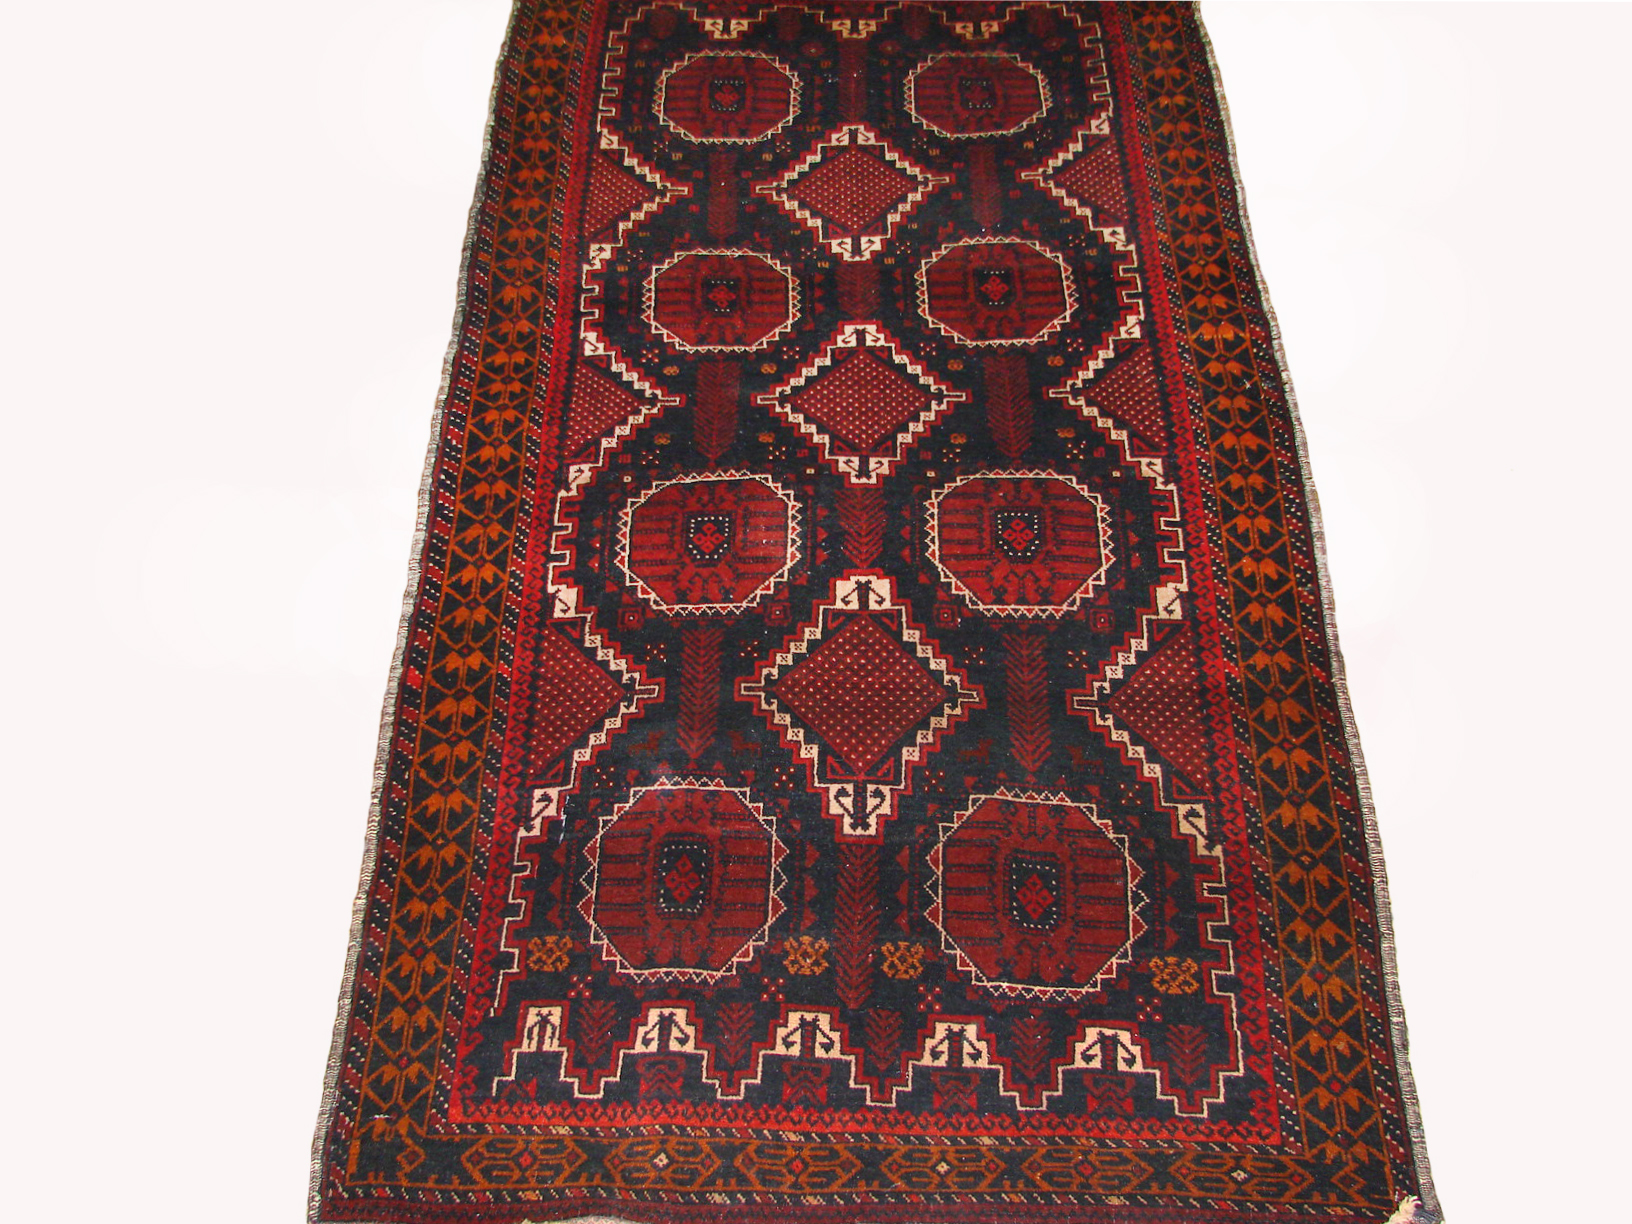 4x6 Kazak Hand Knotted Wool Area Rug - MR19455